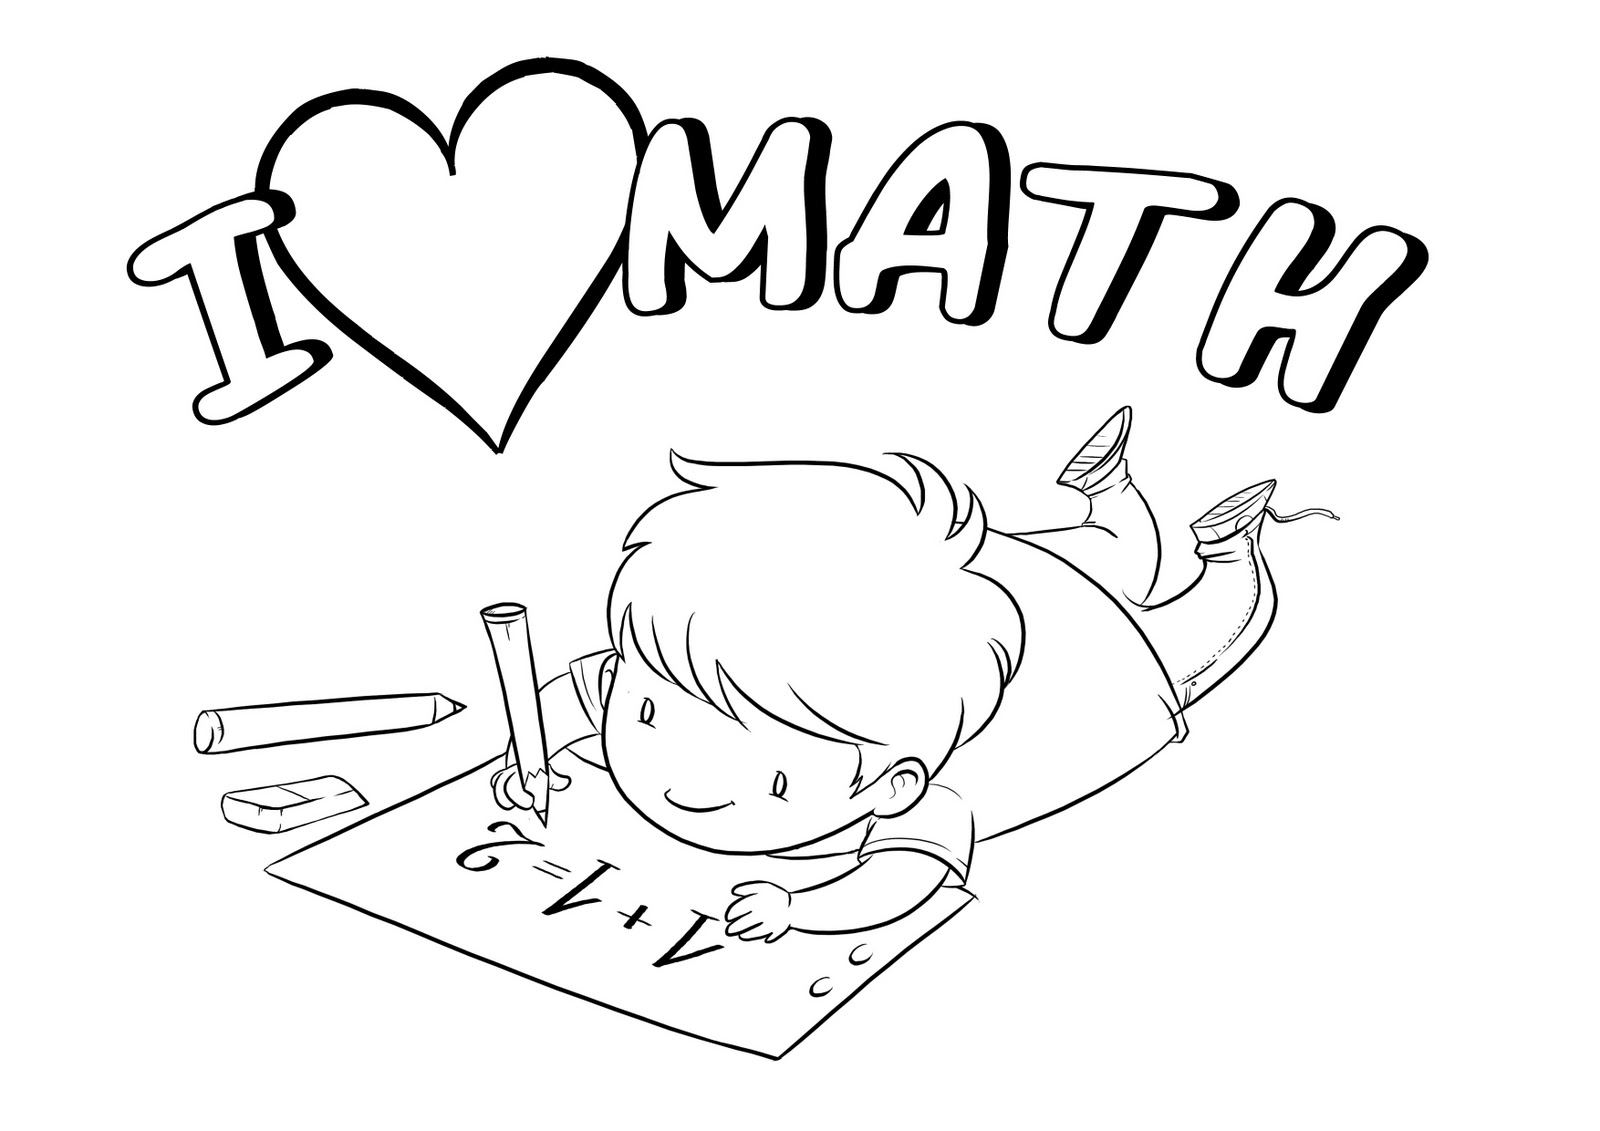 Coloring sheets with math problems - Math Coloring Pages Free Download